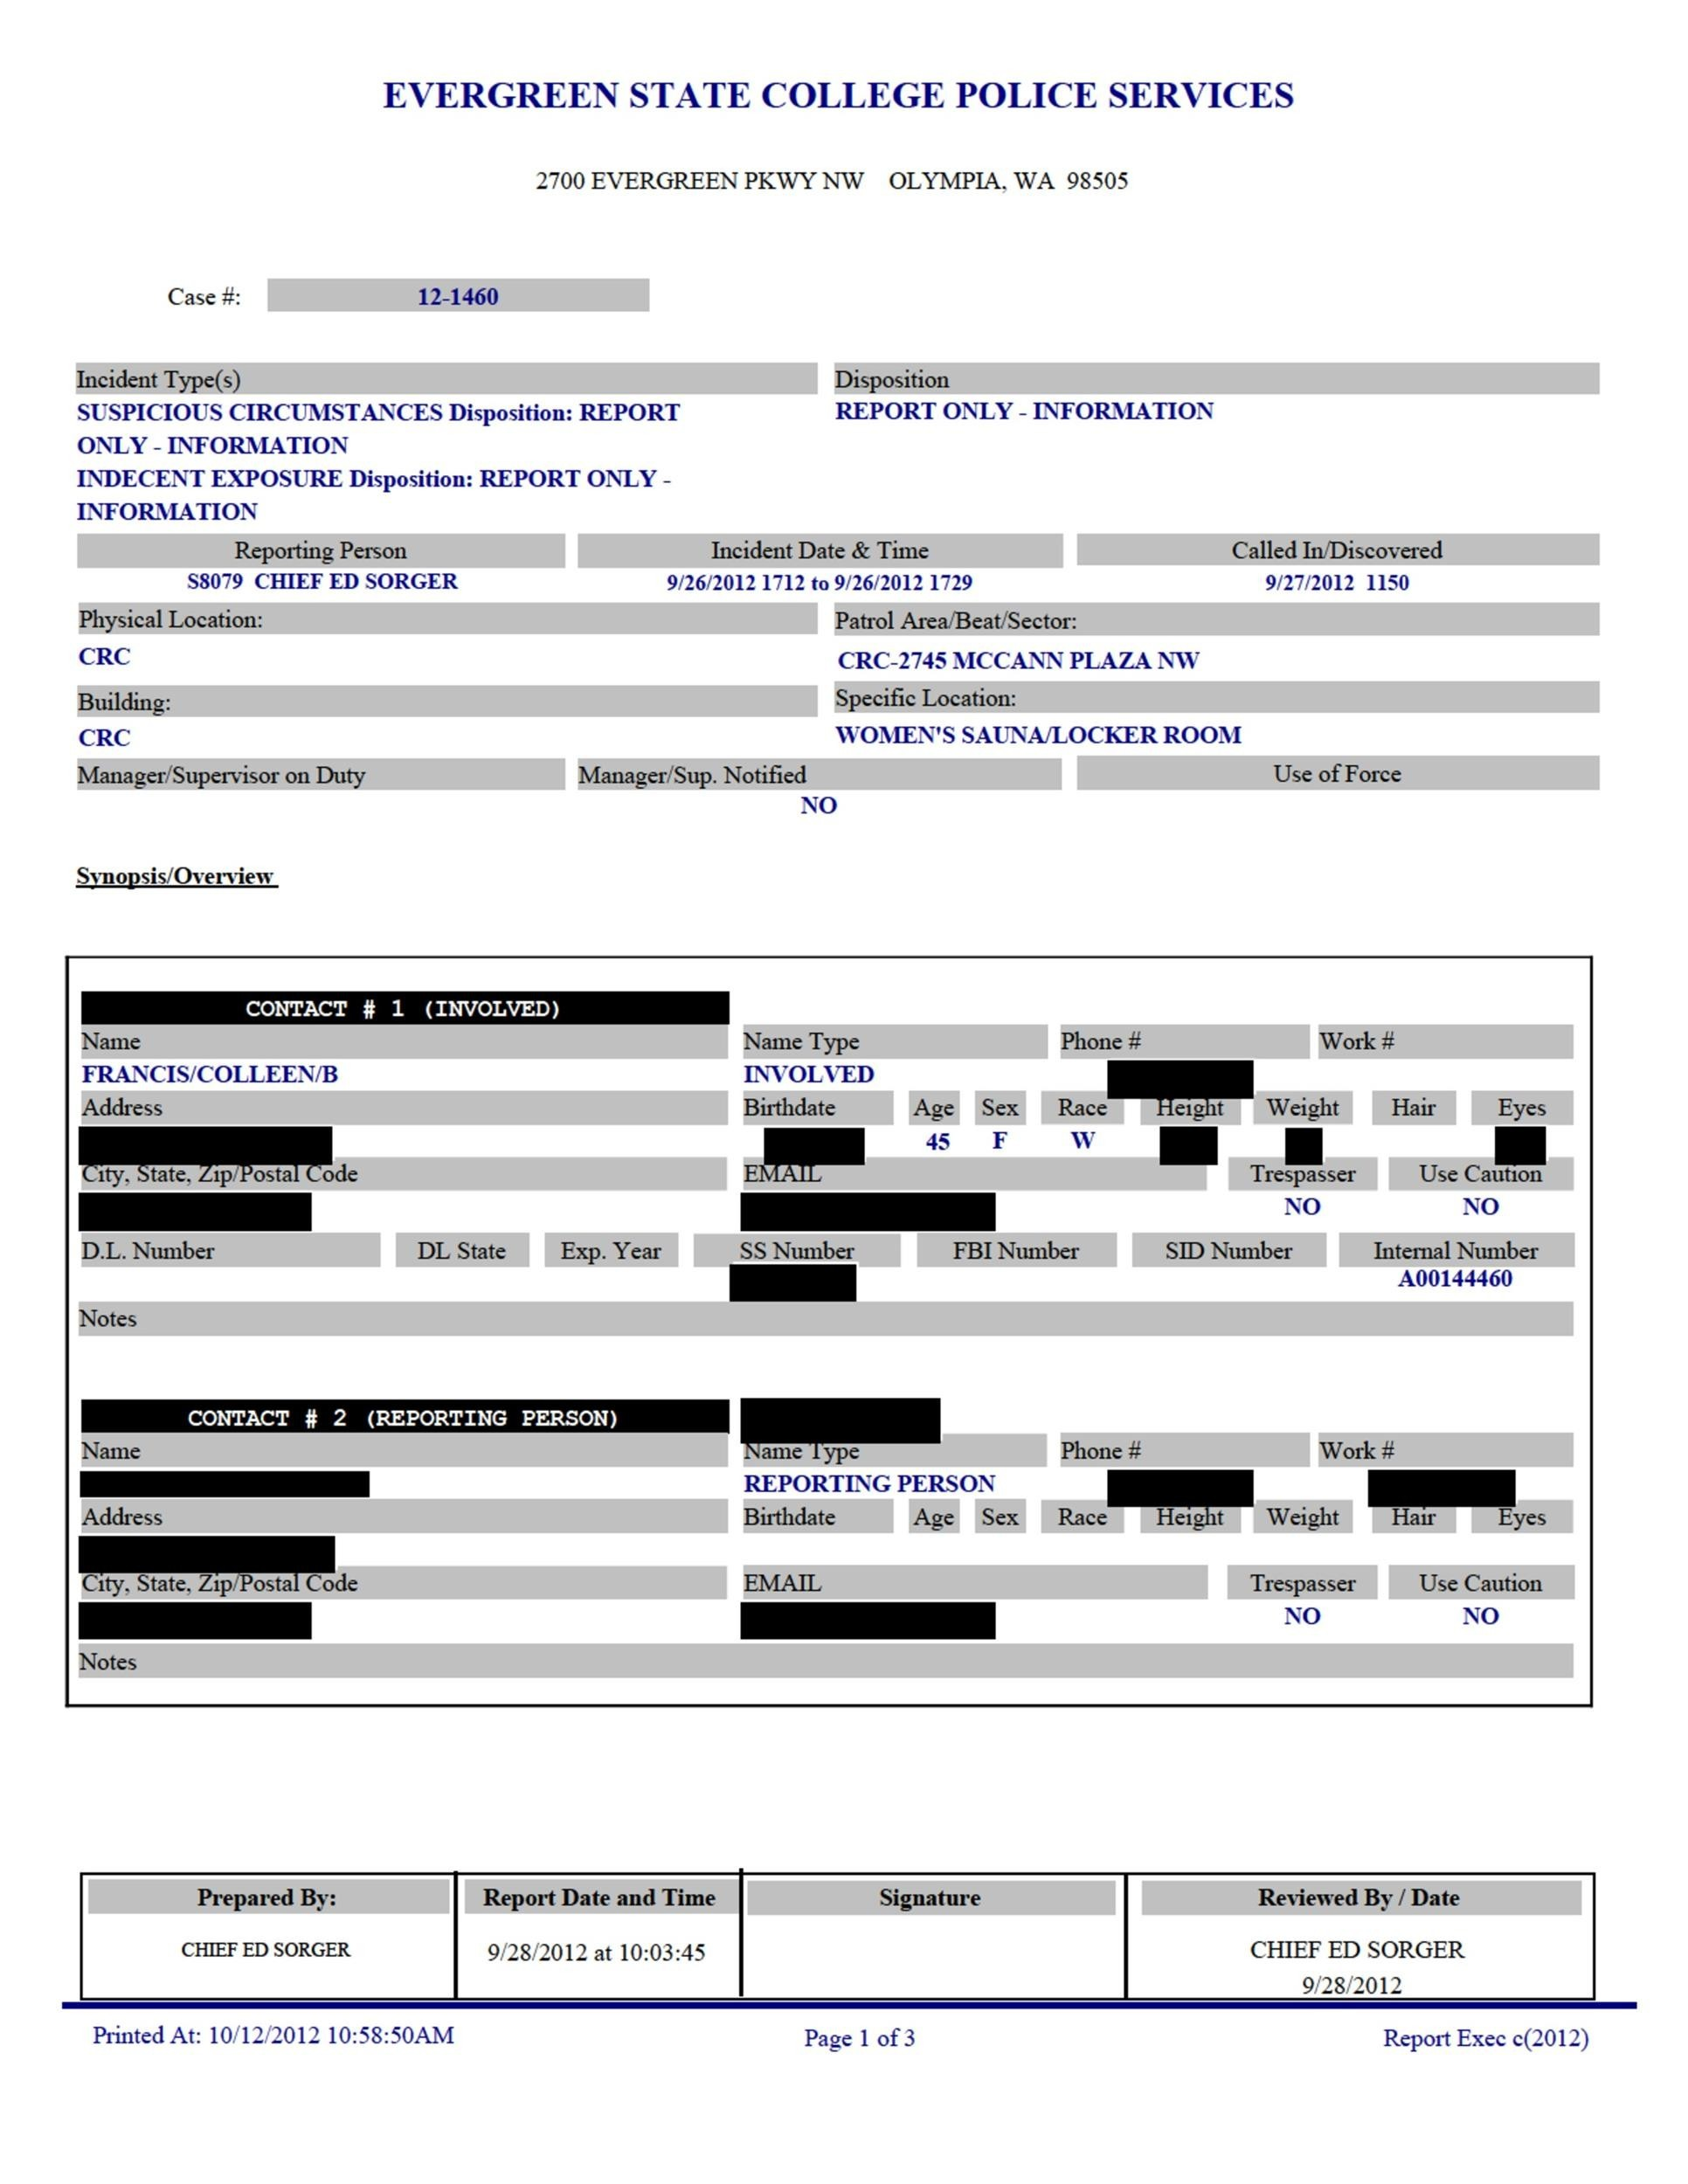 20+ Police Report Template & Examples [Fake / Real] - Template Lab